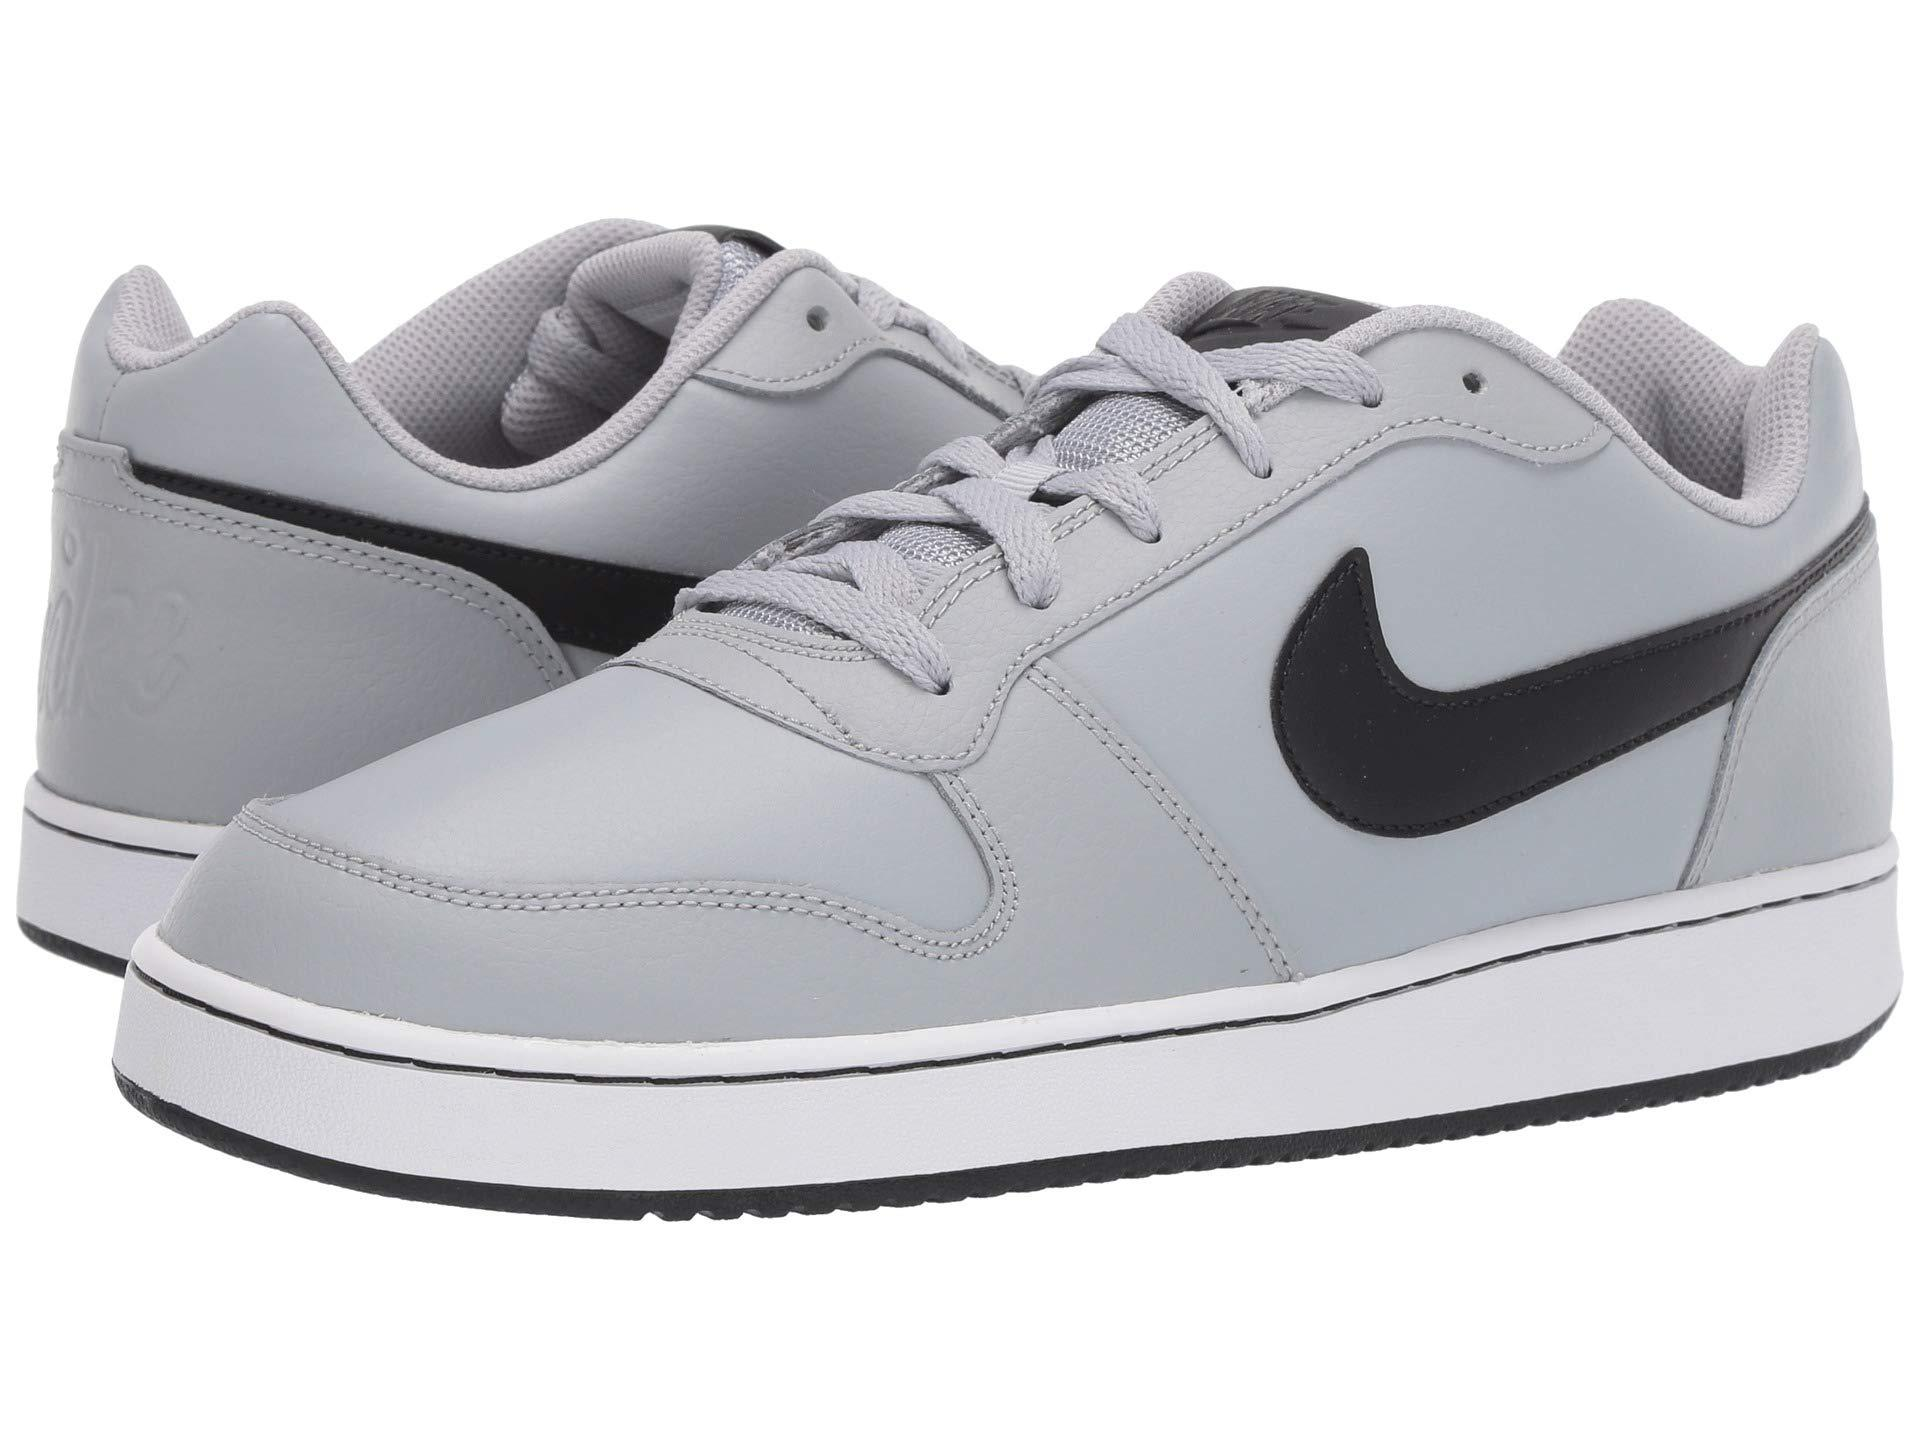 662aa96ce35 Lyst - Nike Ebernon Low (wolf Grey black white) Men s Shoes in Gray ...